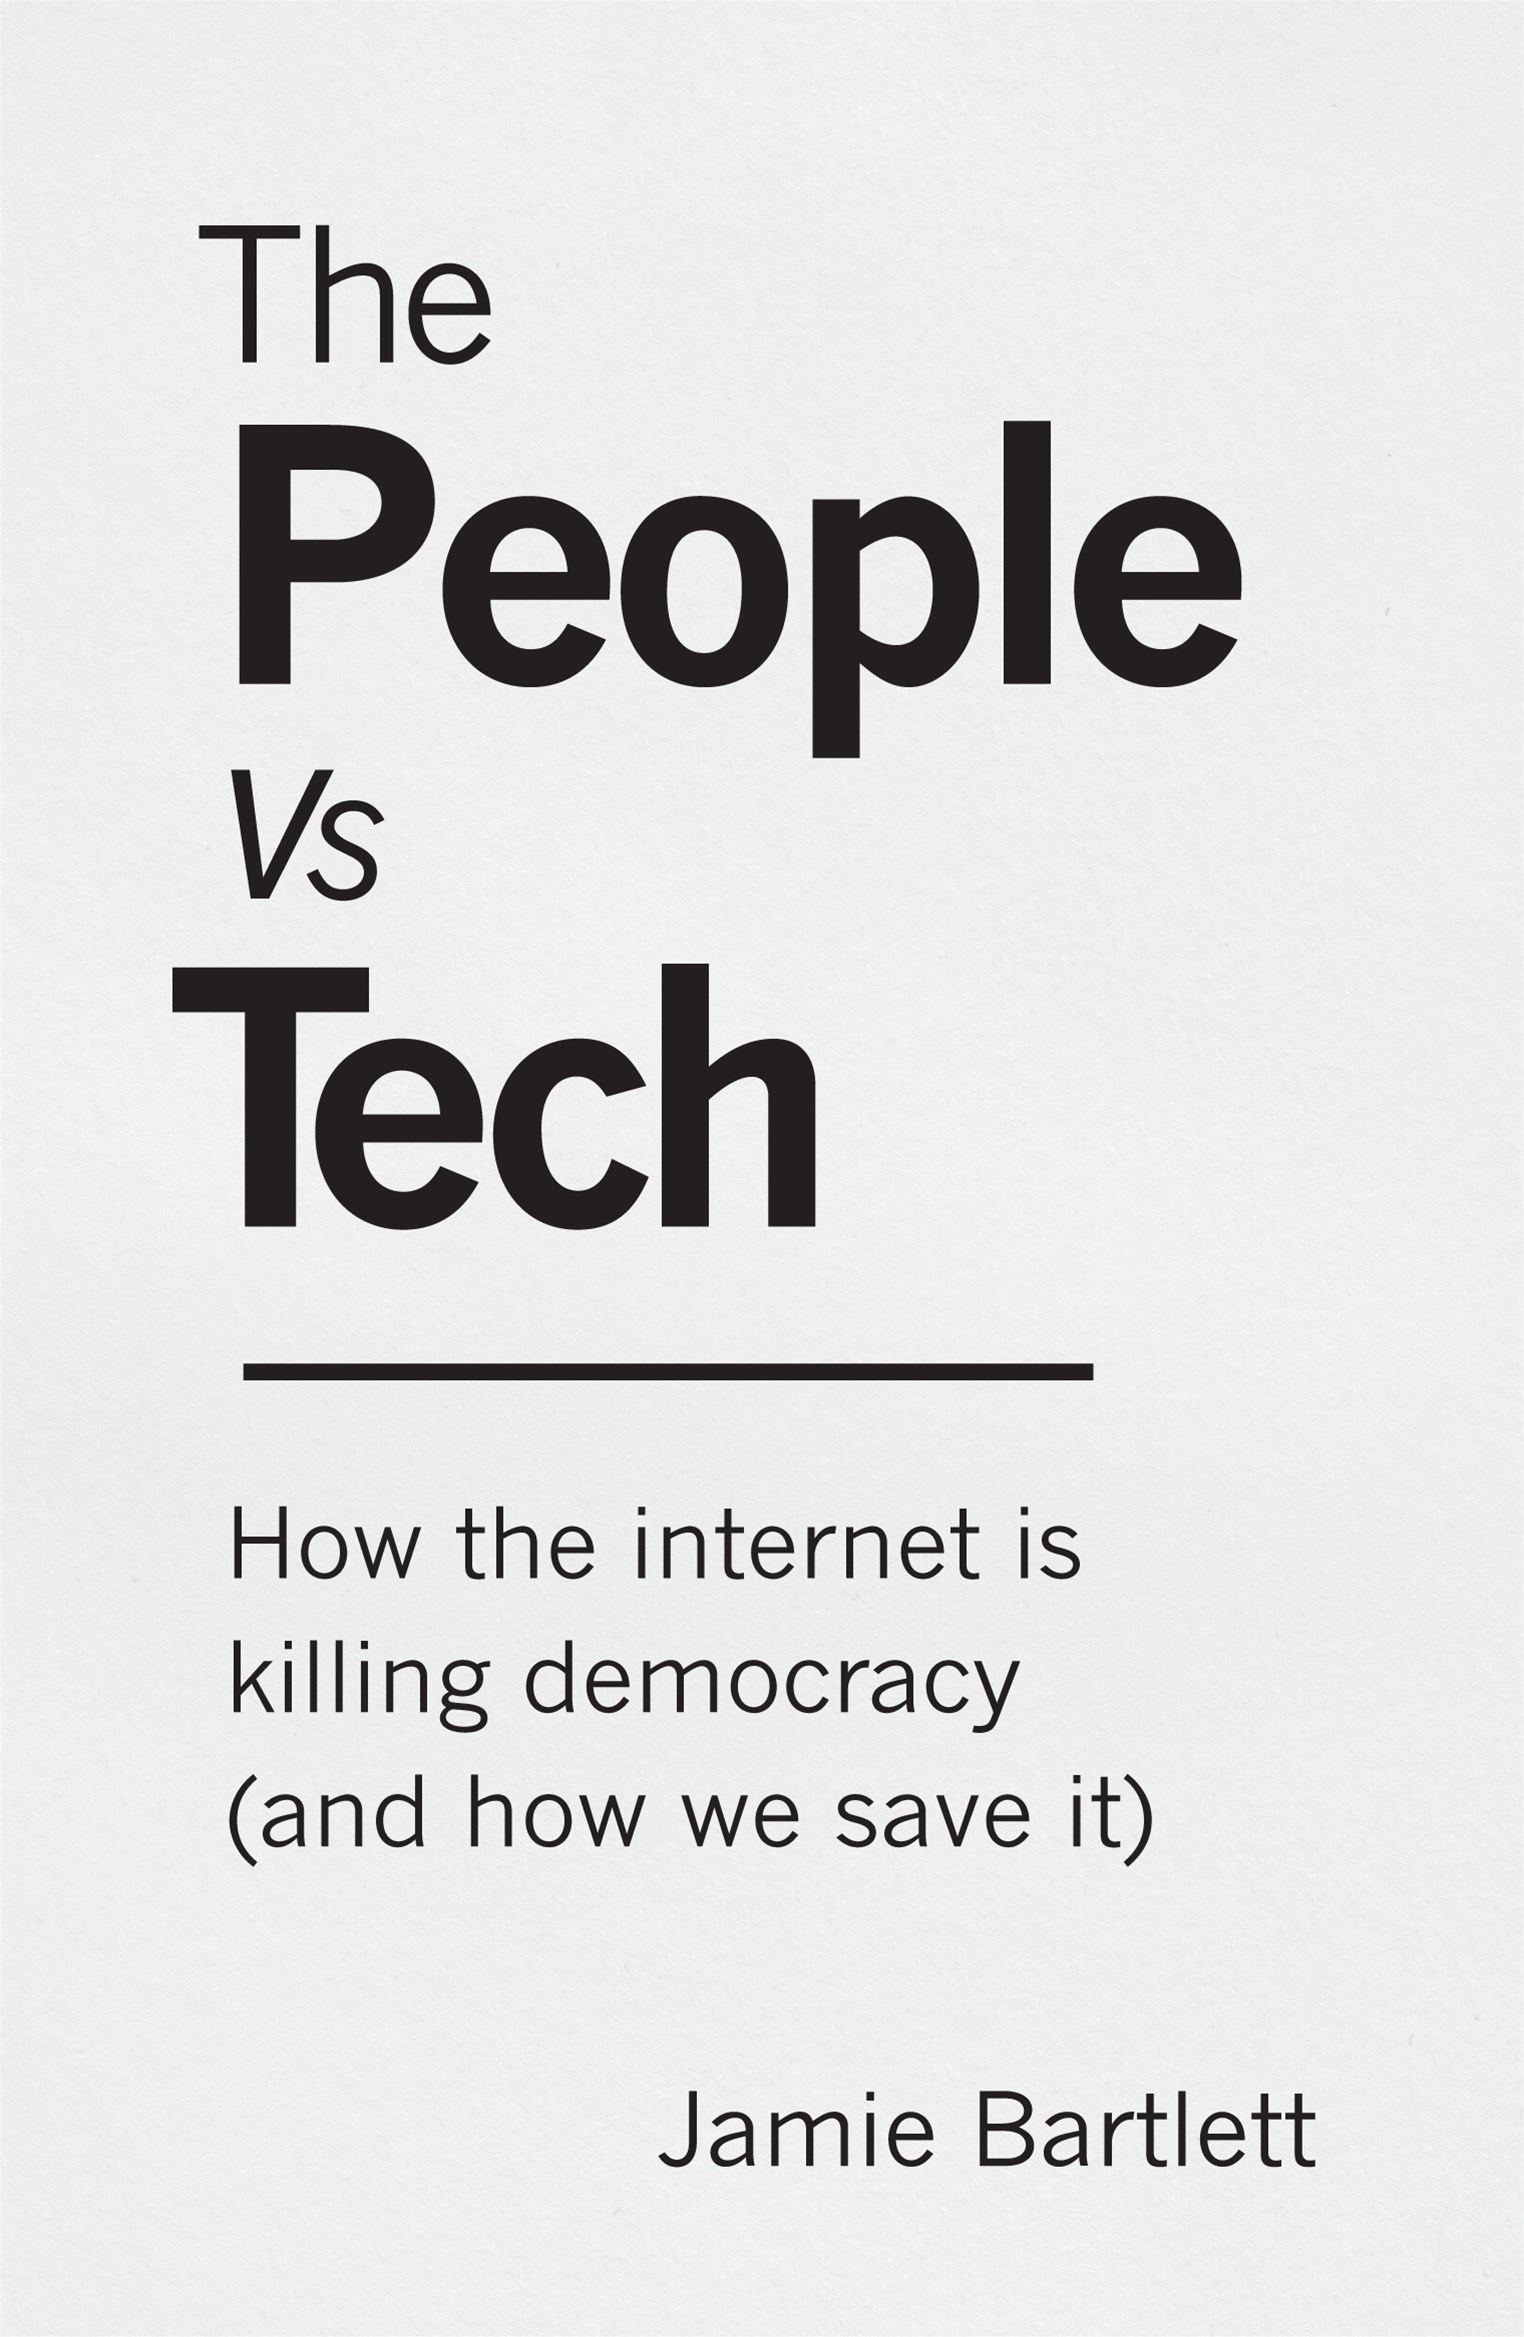 Us vs Tech: How the internet is destroying democracy